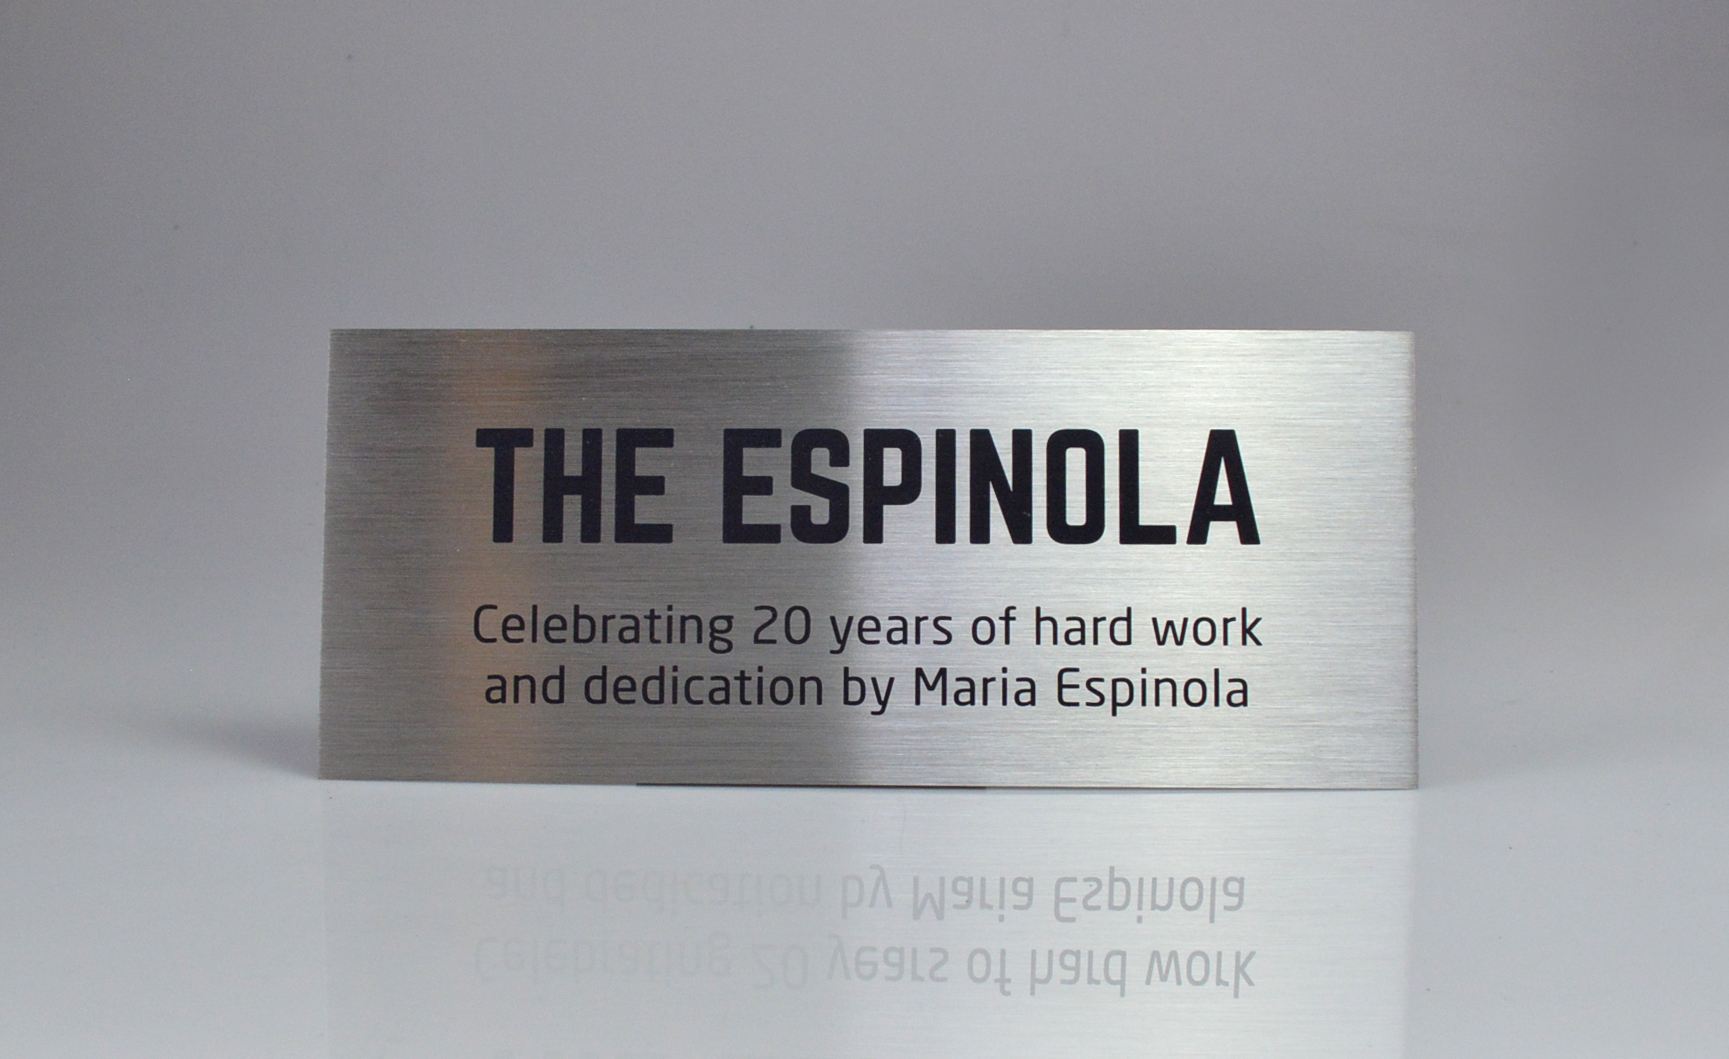 custom-award_personalized_stainless-steel-sign_corporate-recognition_north-america